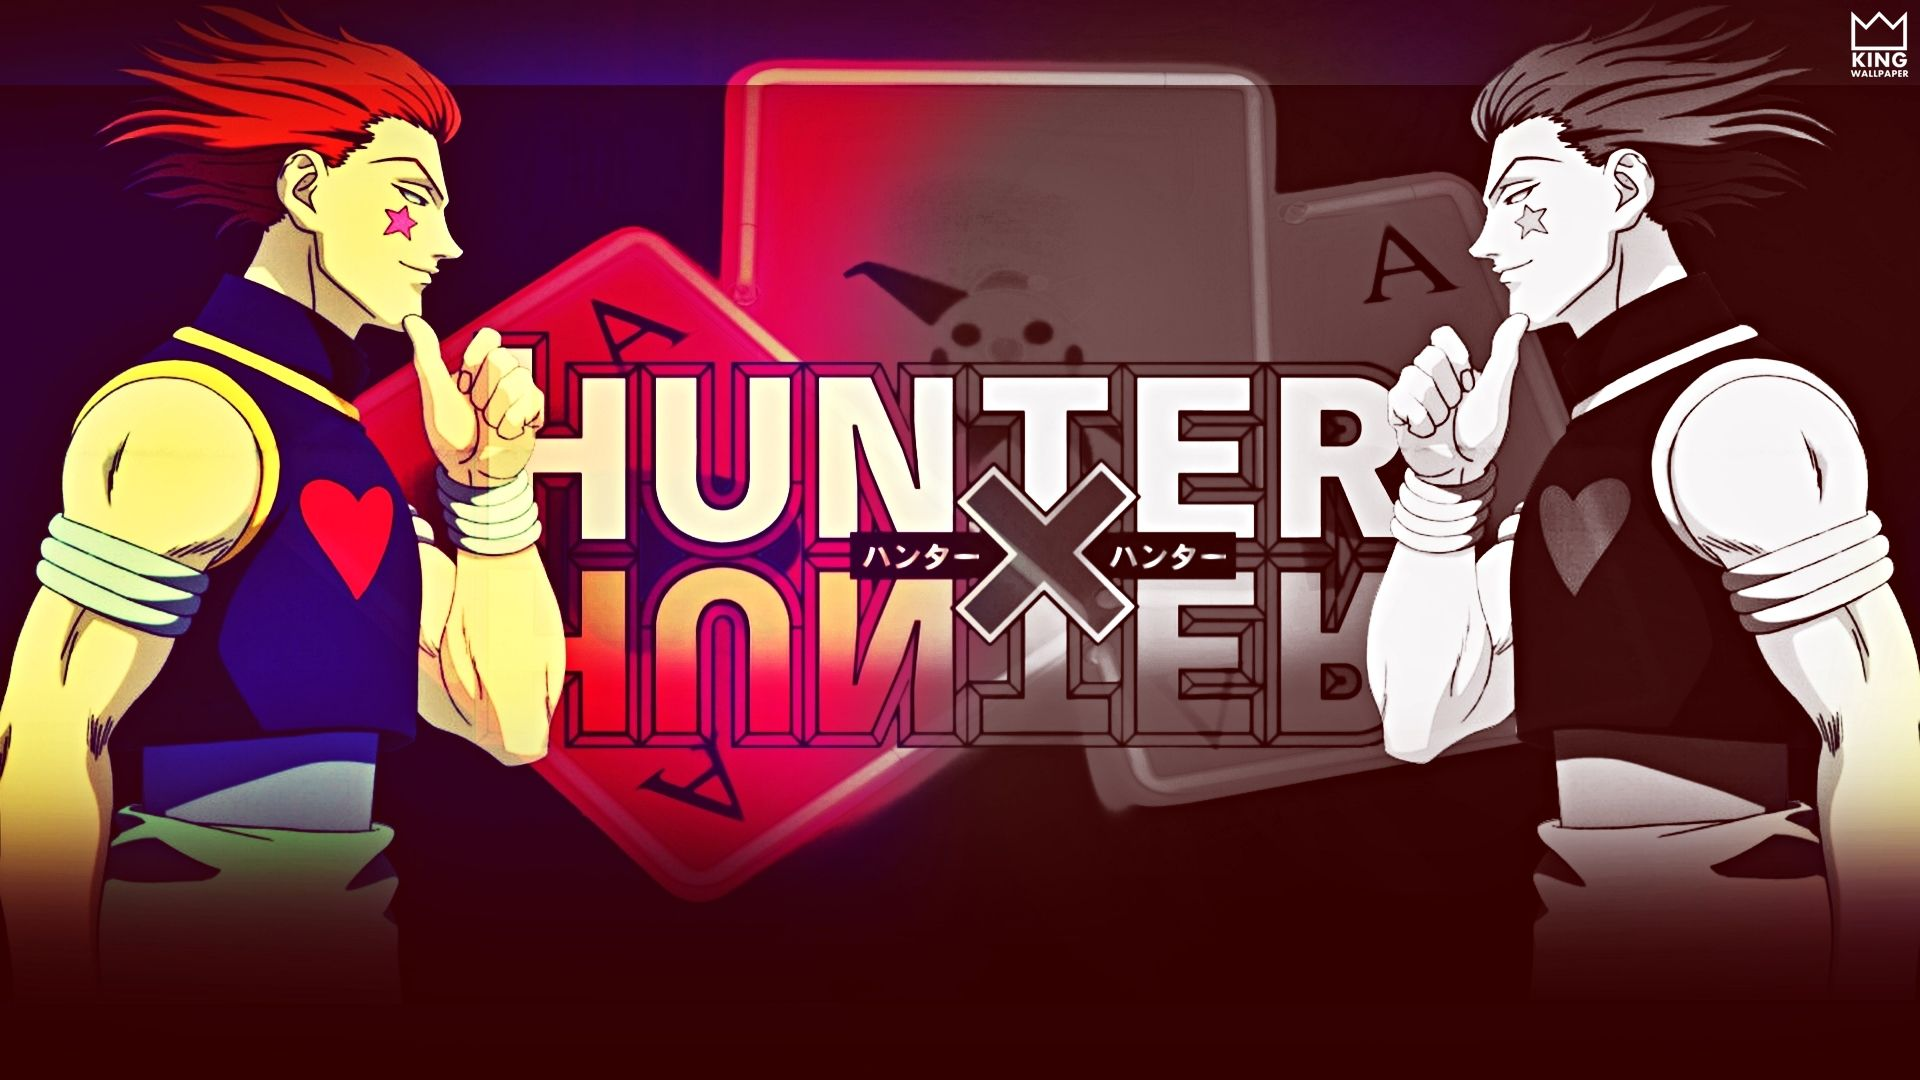 Hunter x hunter wallpaper hd 1192670 hunter x hunter wallpapers hunter x hunter wallpaper hd 1192670 hunter x hunter wallpapers download 39 wallpapers voltagebd Gallery